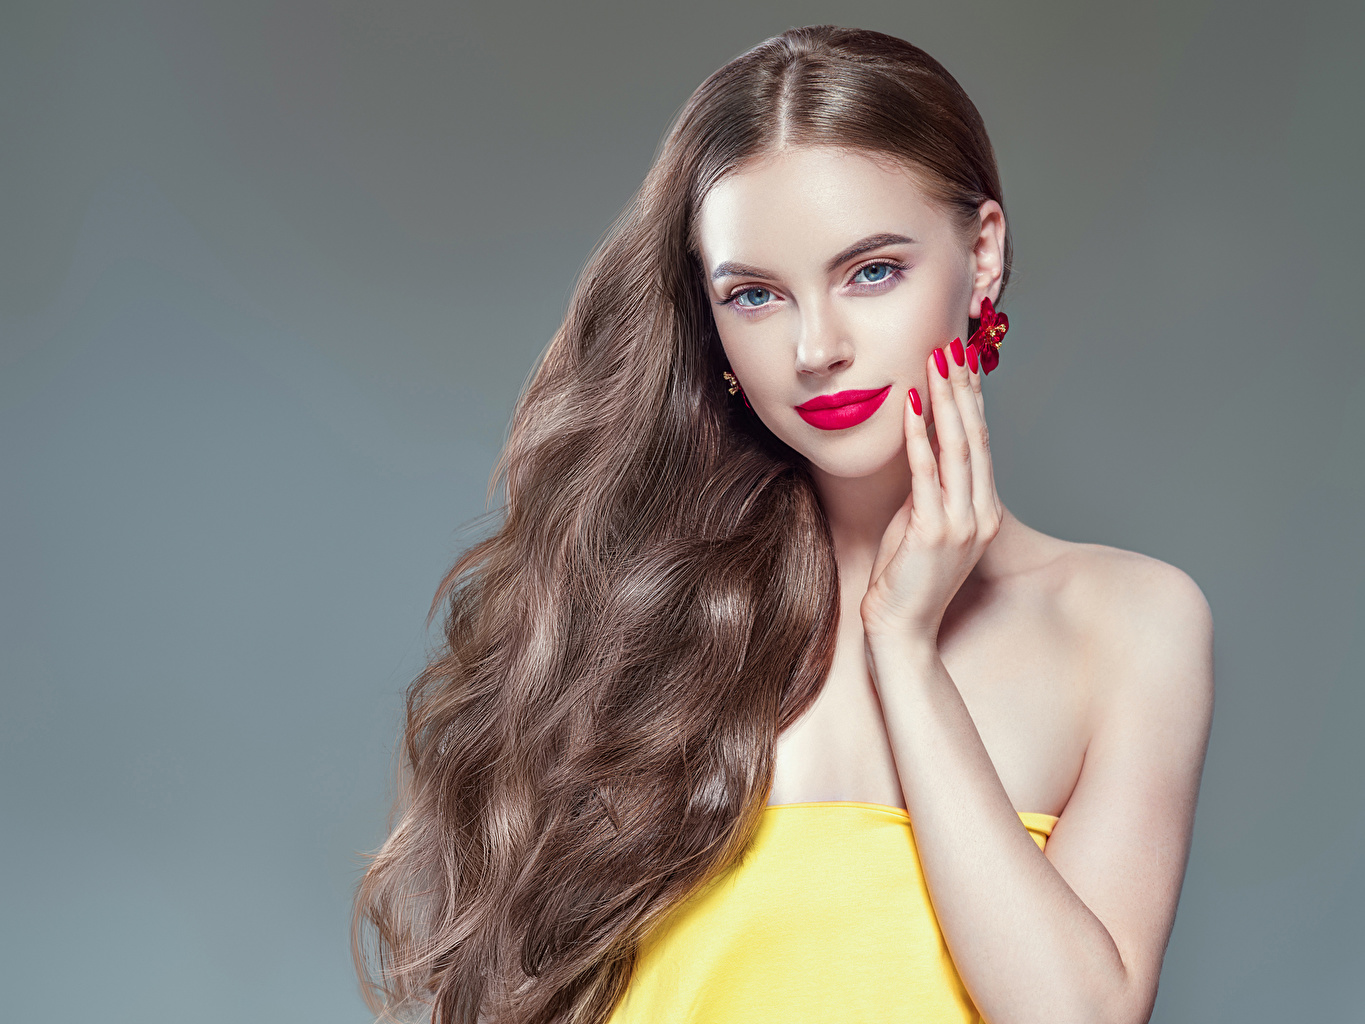 Pictures Brown haired Manicure Hair Girls Hands Red lips Gray background